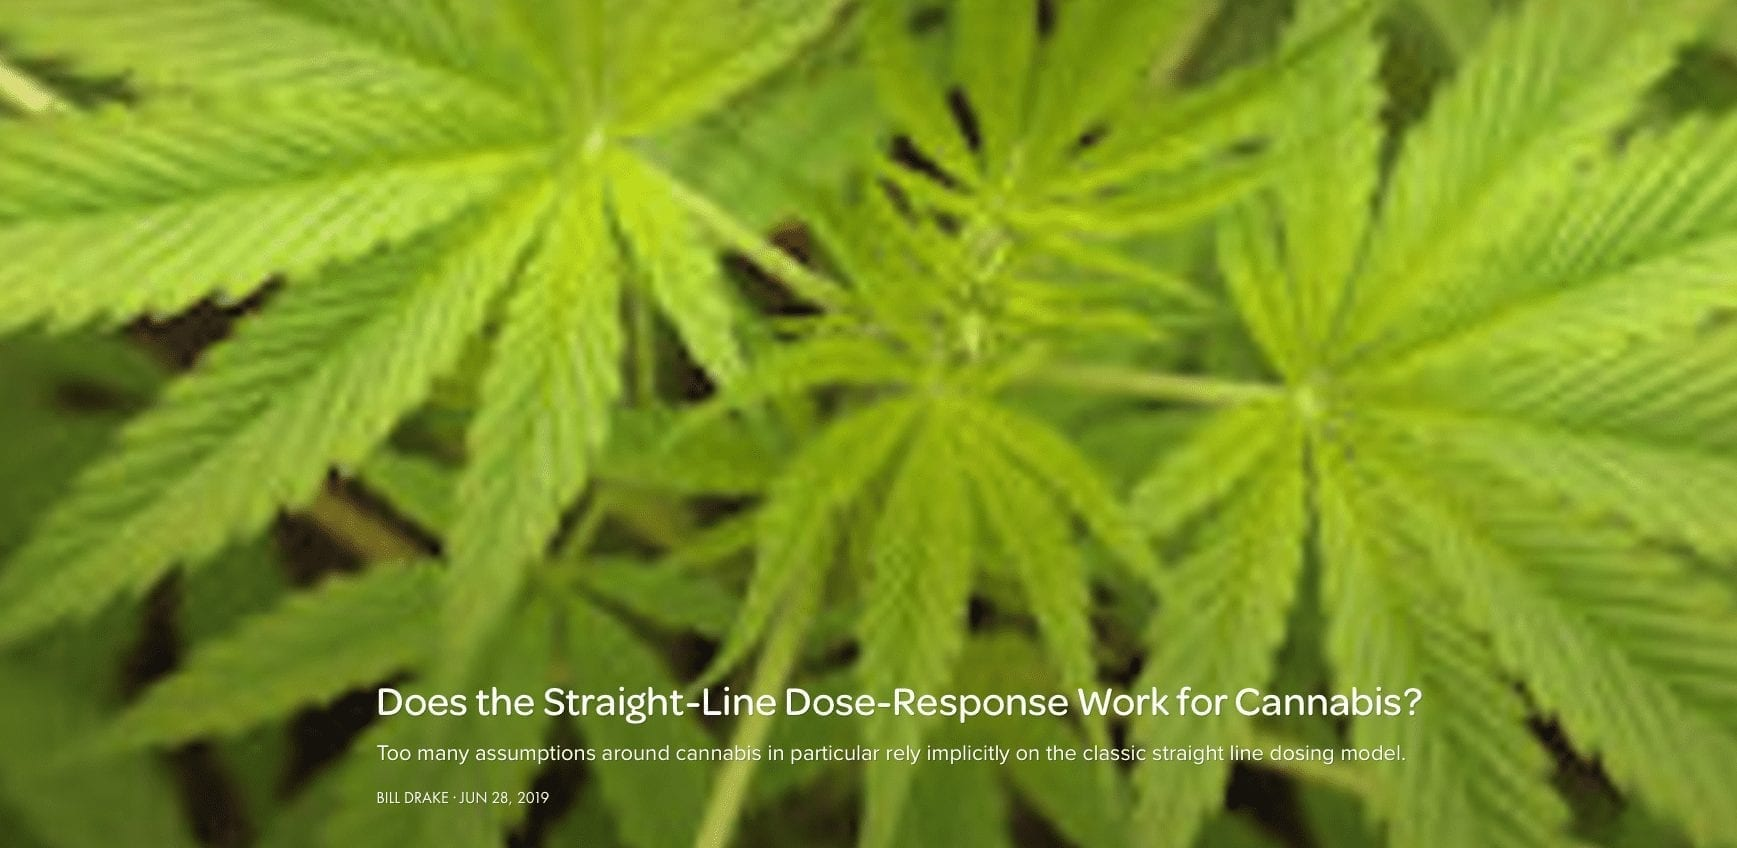 Does the Straight-Line Dose-Response Work for Cannabis?